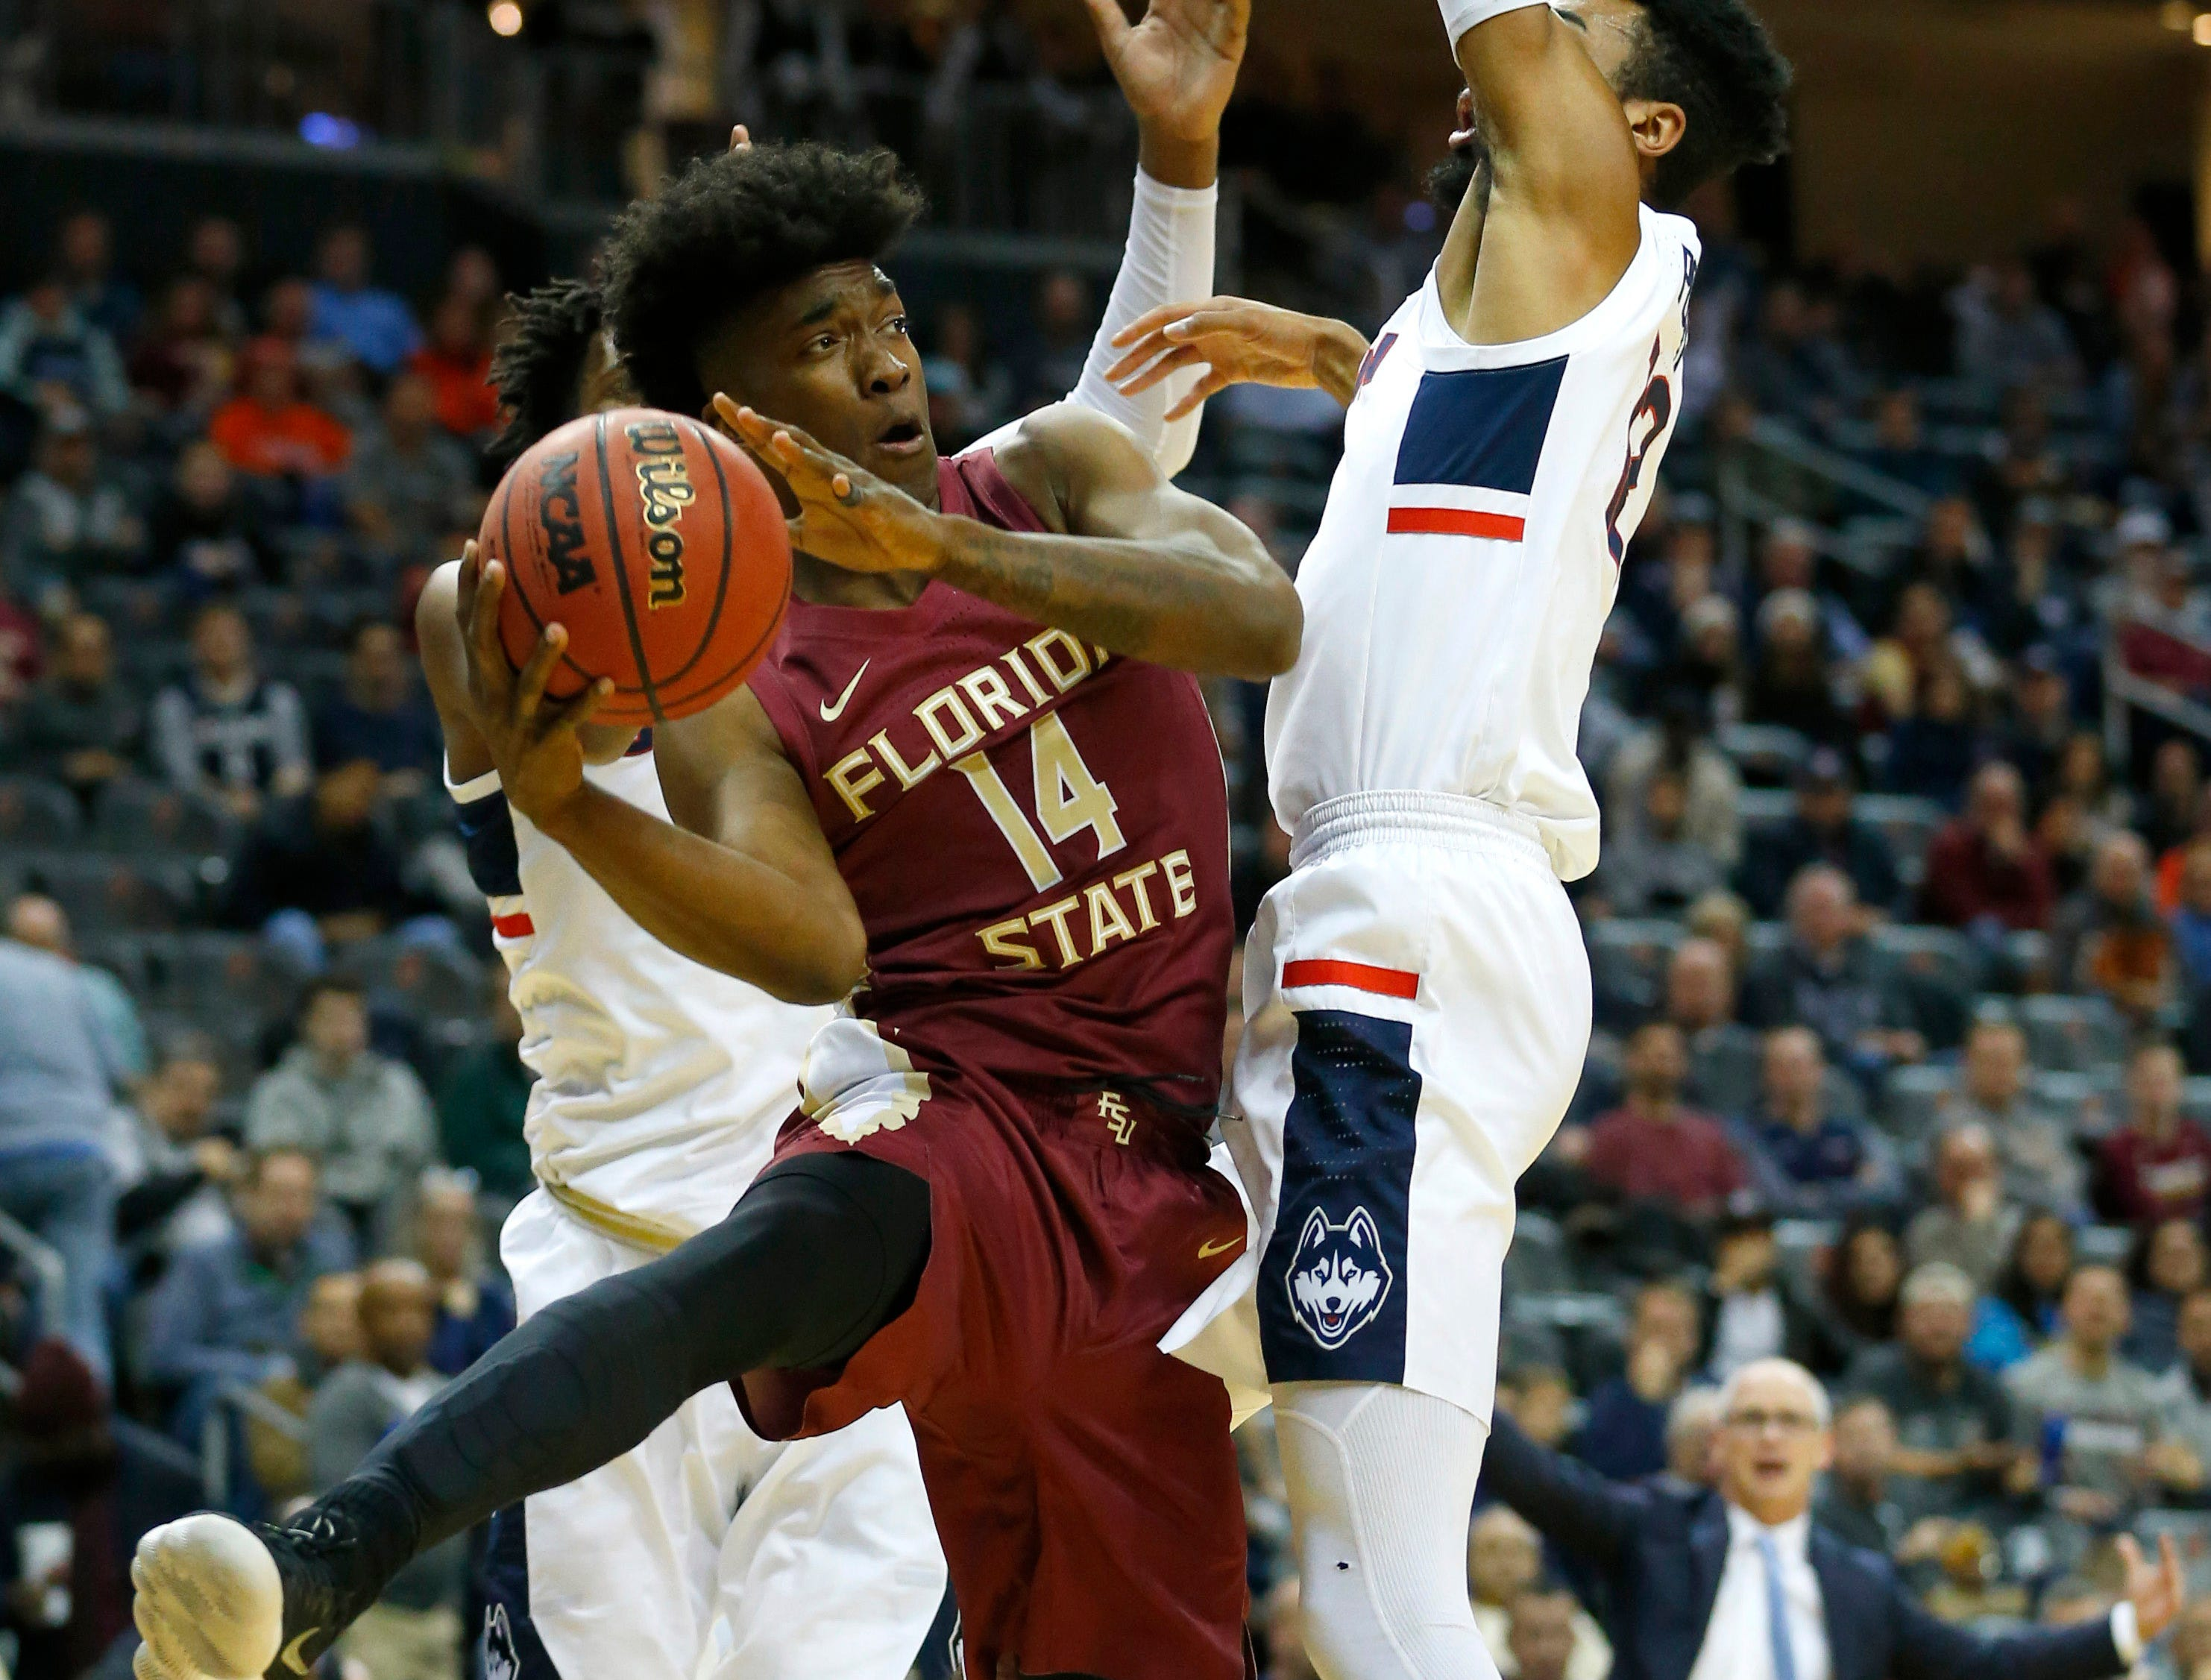 Dec 8, 2018; Newark, NJ, USA; Florida State Seminoles guard Terance Mann (14) shoots the ball around Connecticut Huskies forward Tyler Polley (12) during the first half at Prudential Center. Mandatory Credit: Noah K. Murray-USA TODAY Sports